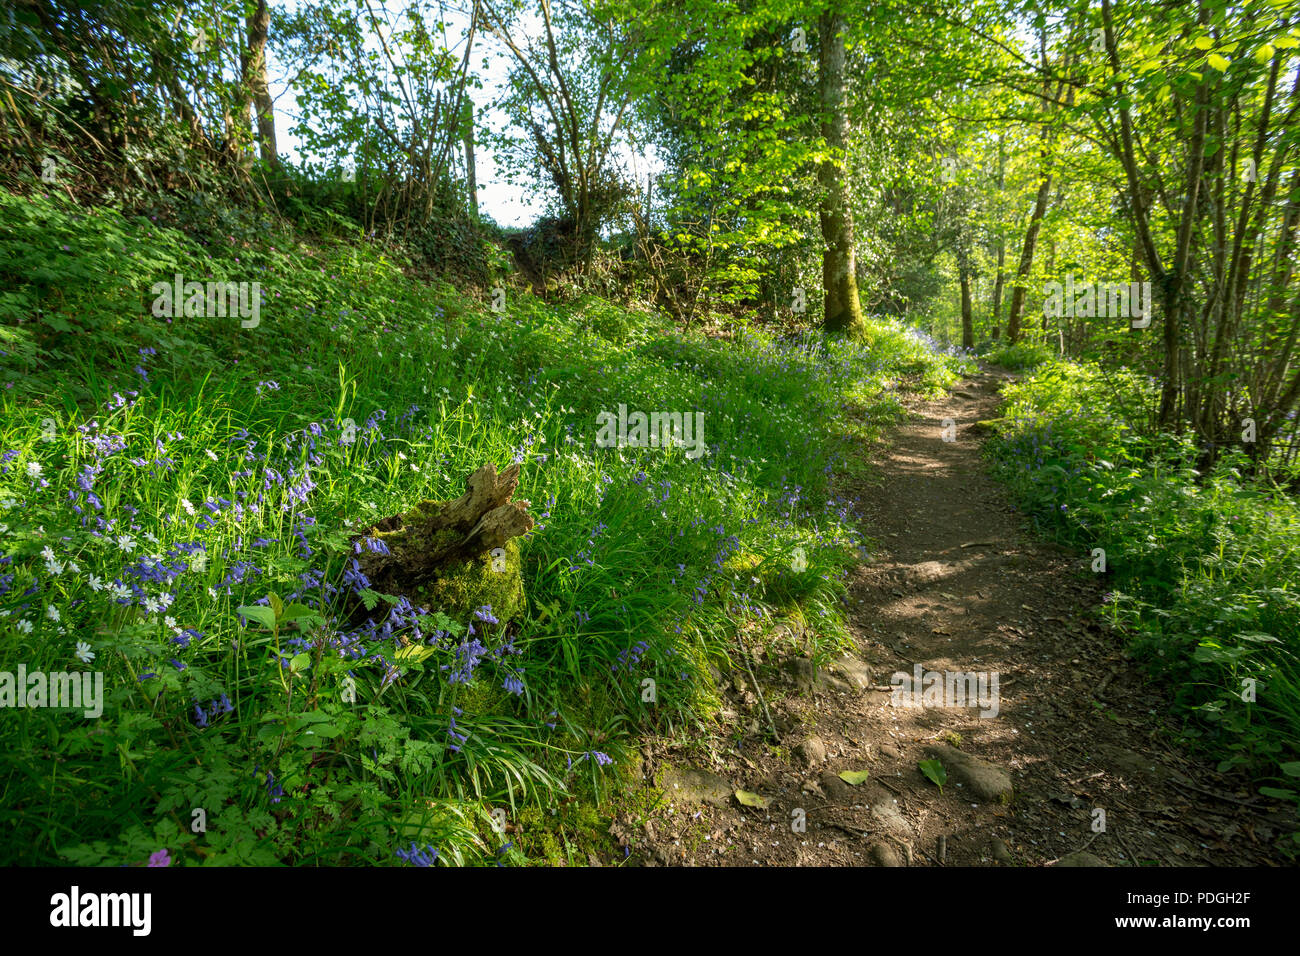 Flowering Bluebells along a hiking or mtb trail through a green spring forest. - Stock Image